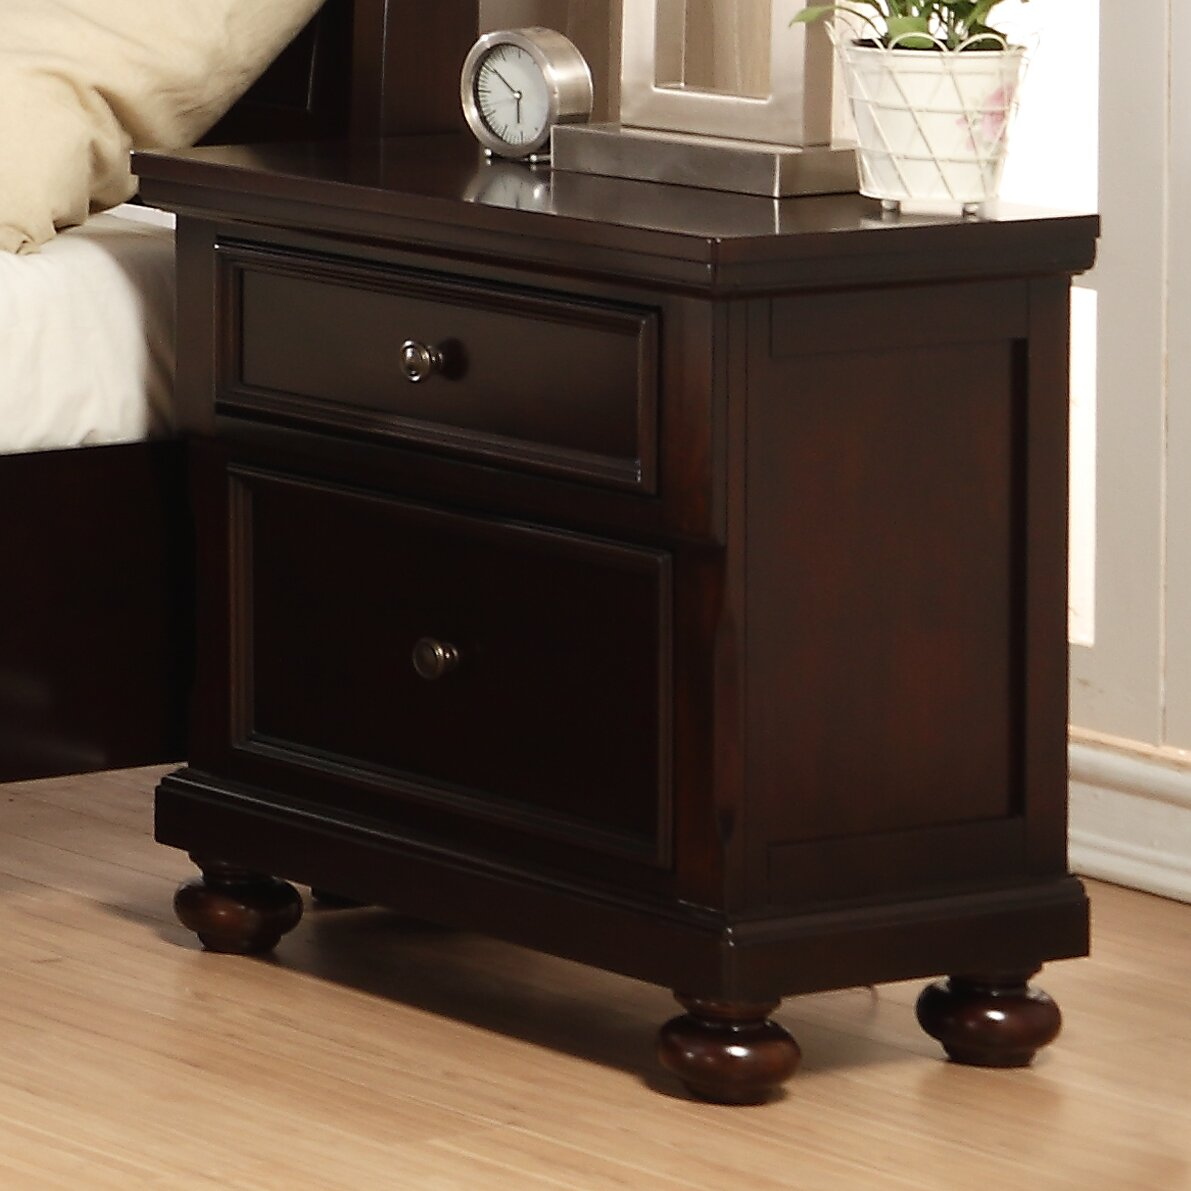 Roundhill Furniture Brishland 2 Drawer Nightstand